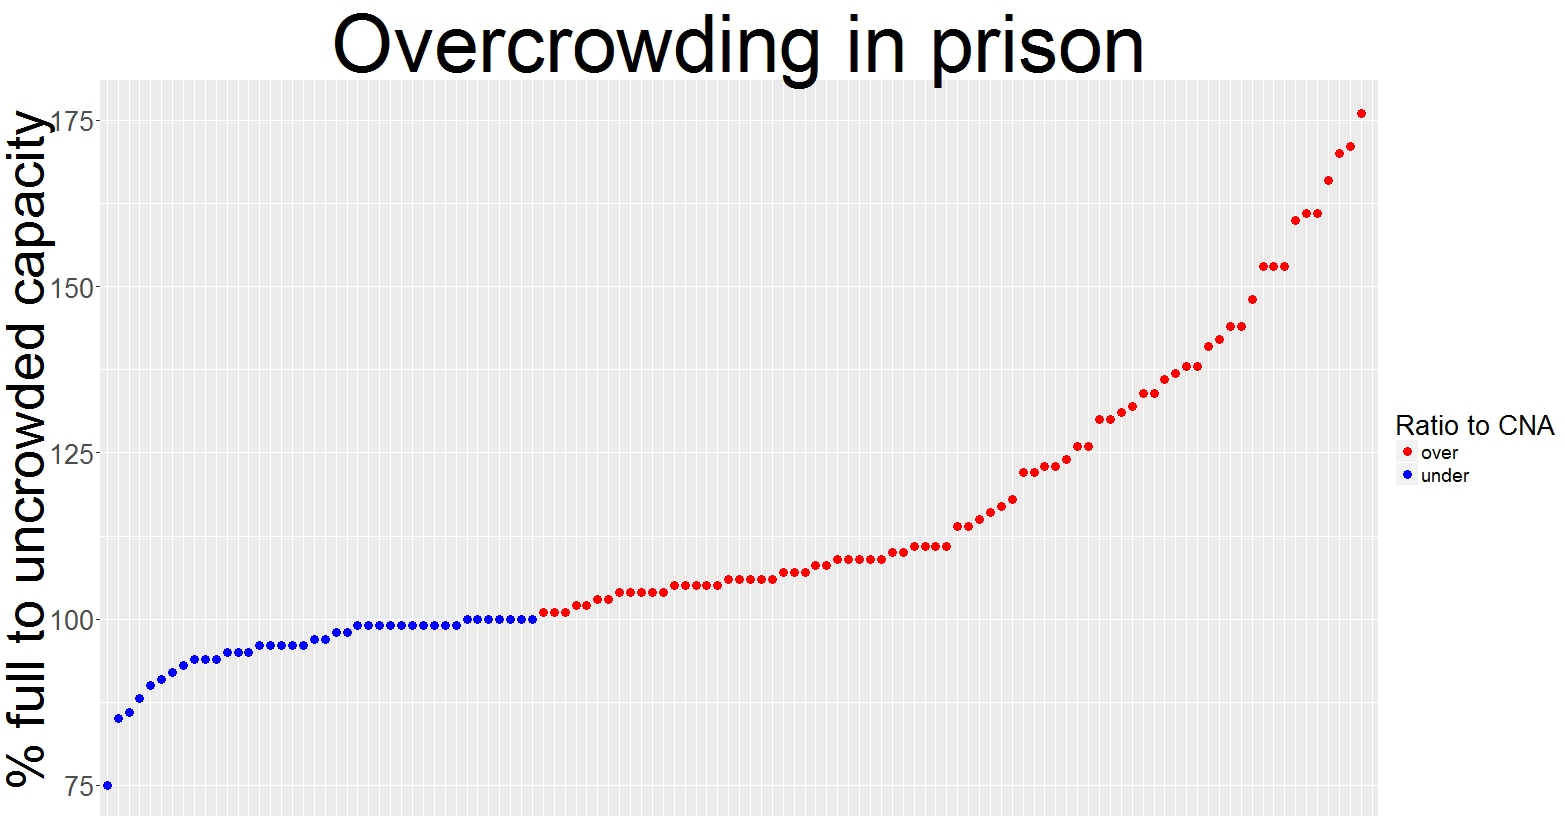 Overcrowding in prison